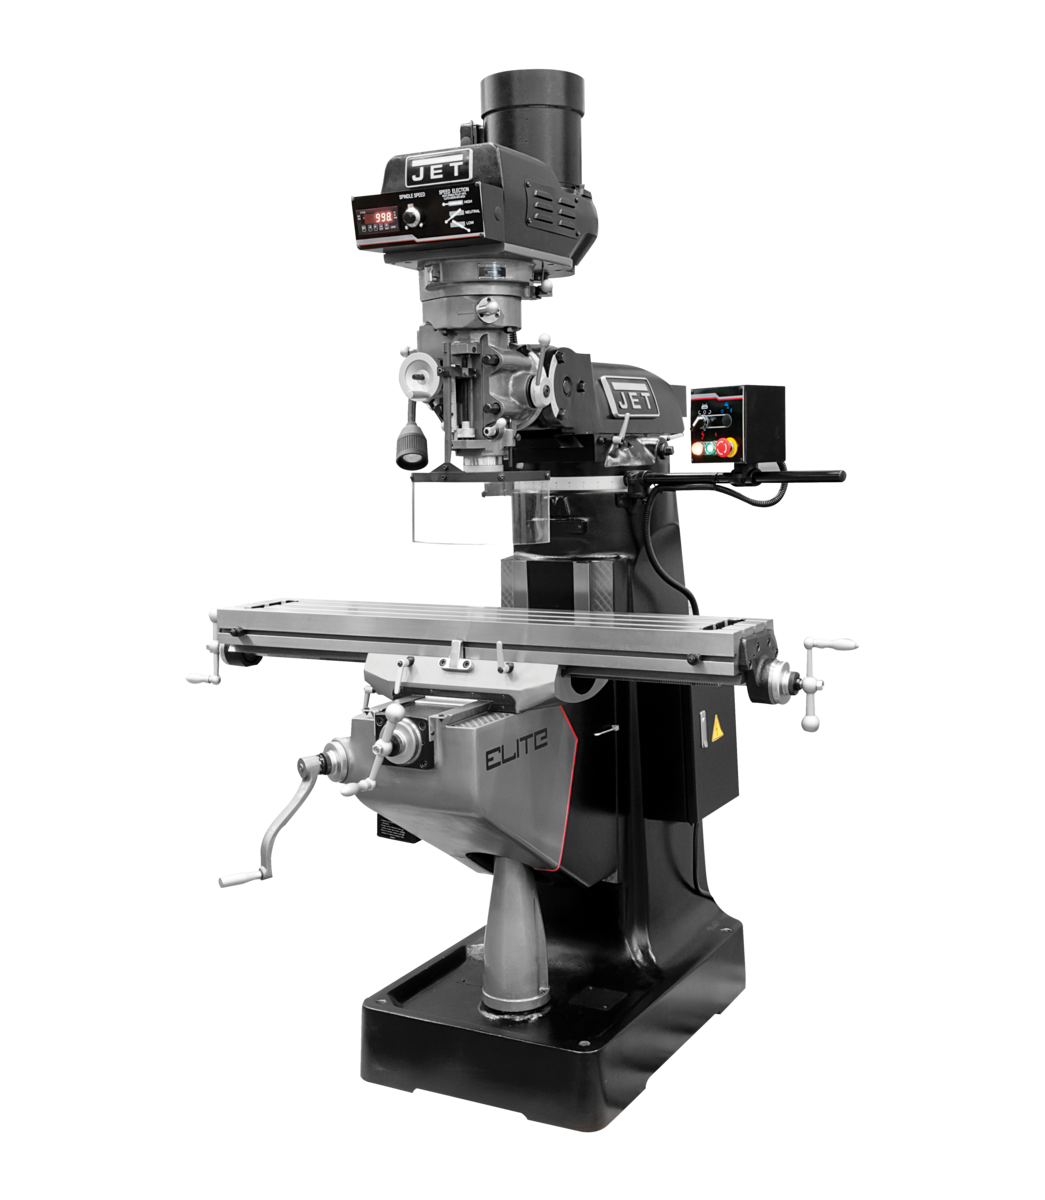 EVS-949 Mill with 2-Axis ACU-RITE 203 DRO and Servo X-Axis Powerfeed